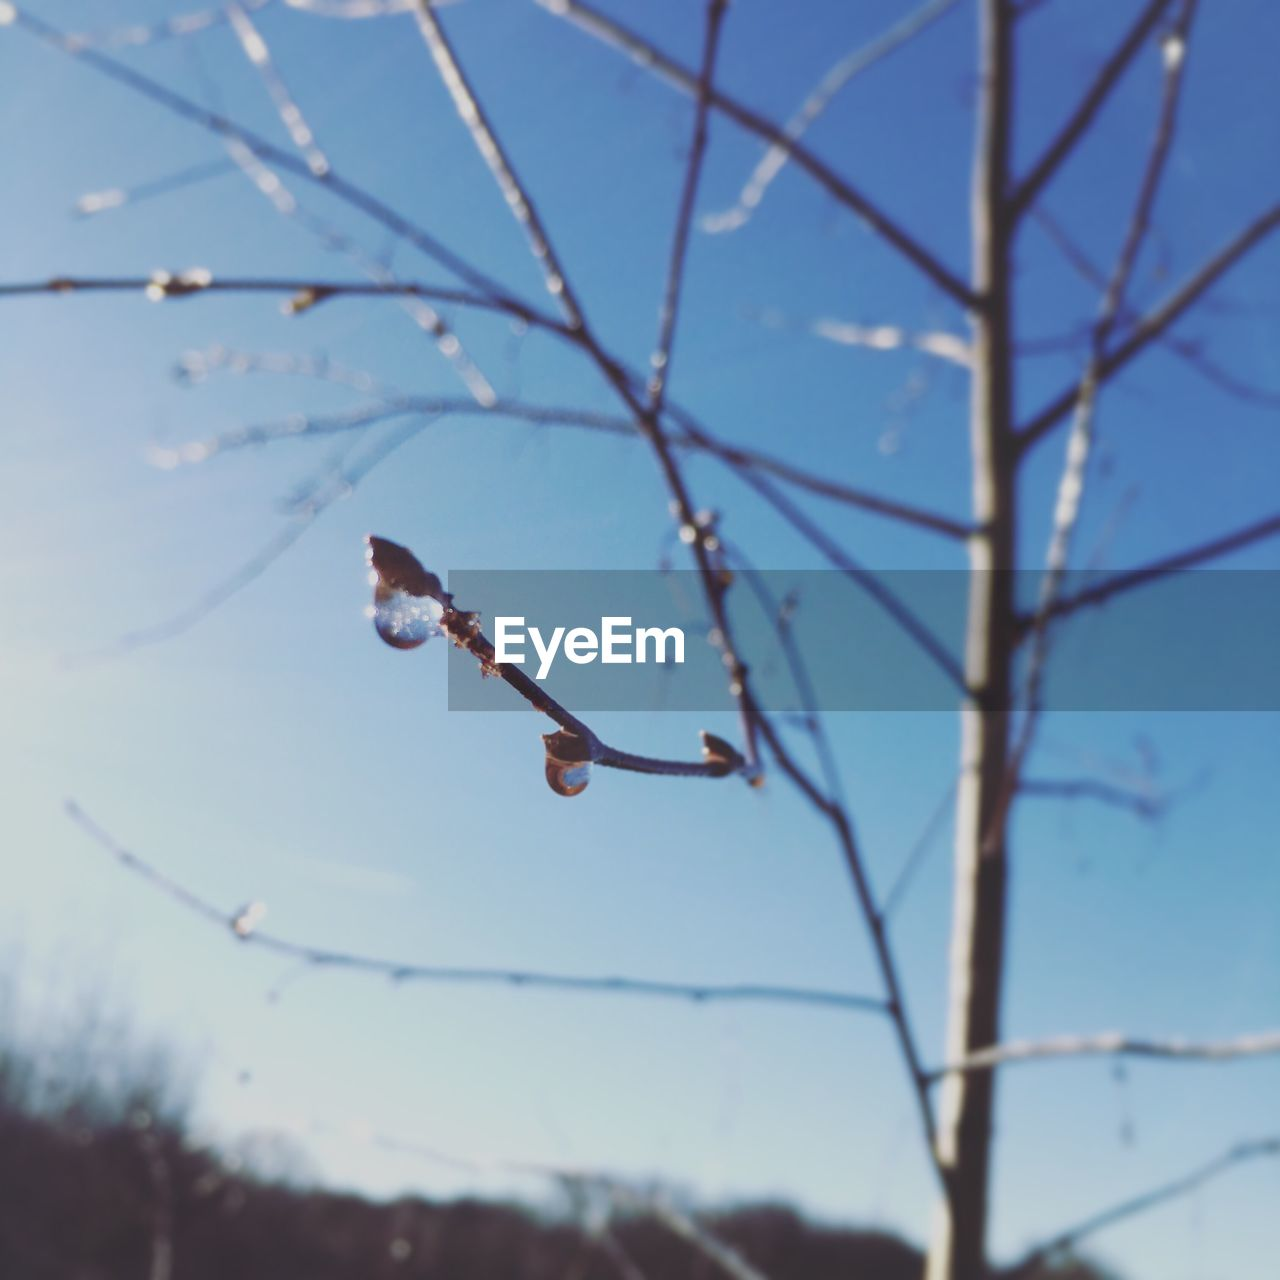 focus on foreground, nature, day, no people, animals in the wild, one animal, branch, animal themes, tree, beauty in nature, outdoors, animal wildlife, close-up, sky